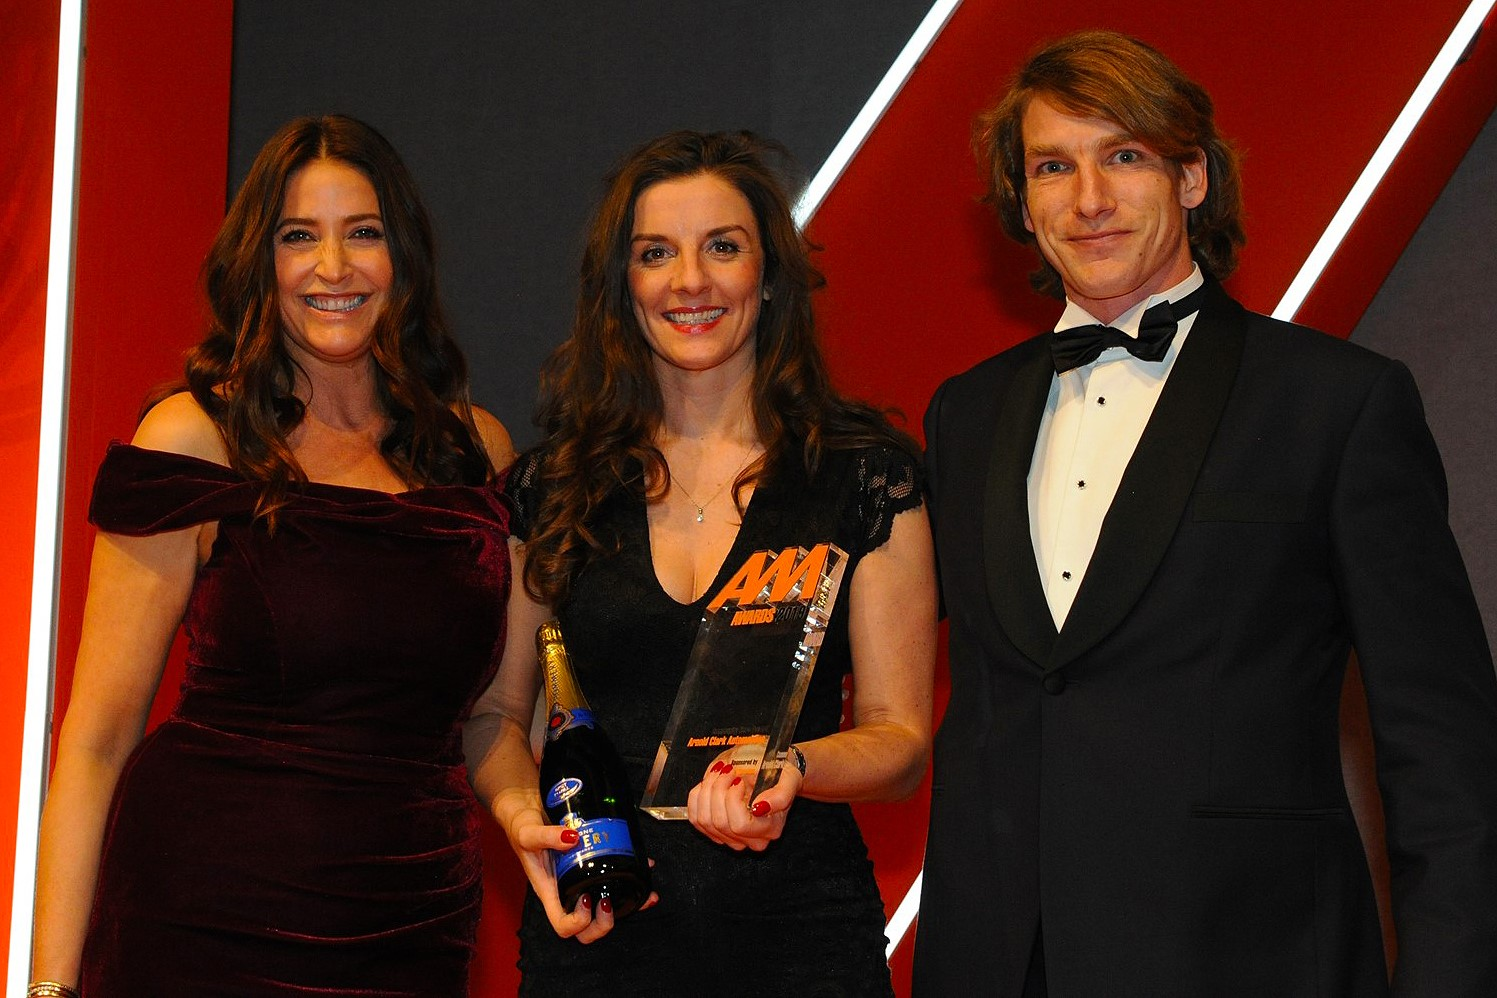 Lee-Ann Edison, head of  communications, Arnold Clark  Automobiles, accepts the award  from Freddie Hunt, Texaco  Havoline brand ambassador, right, and host Lisa Snowdon, left